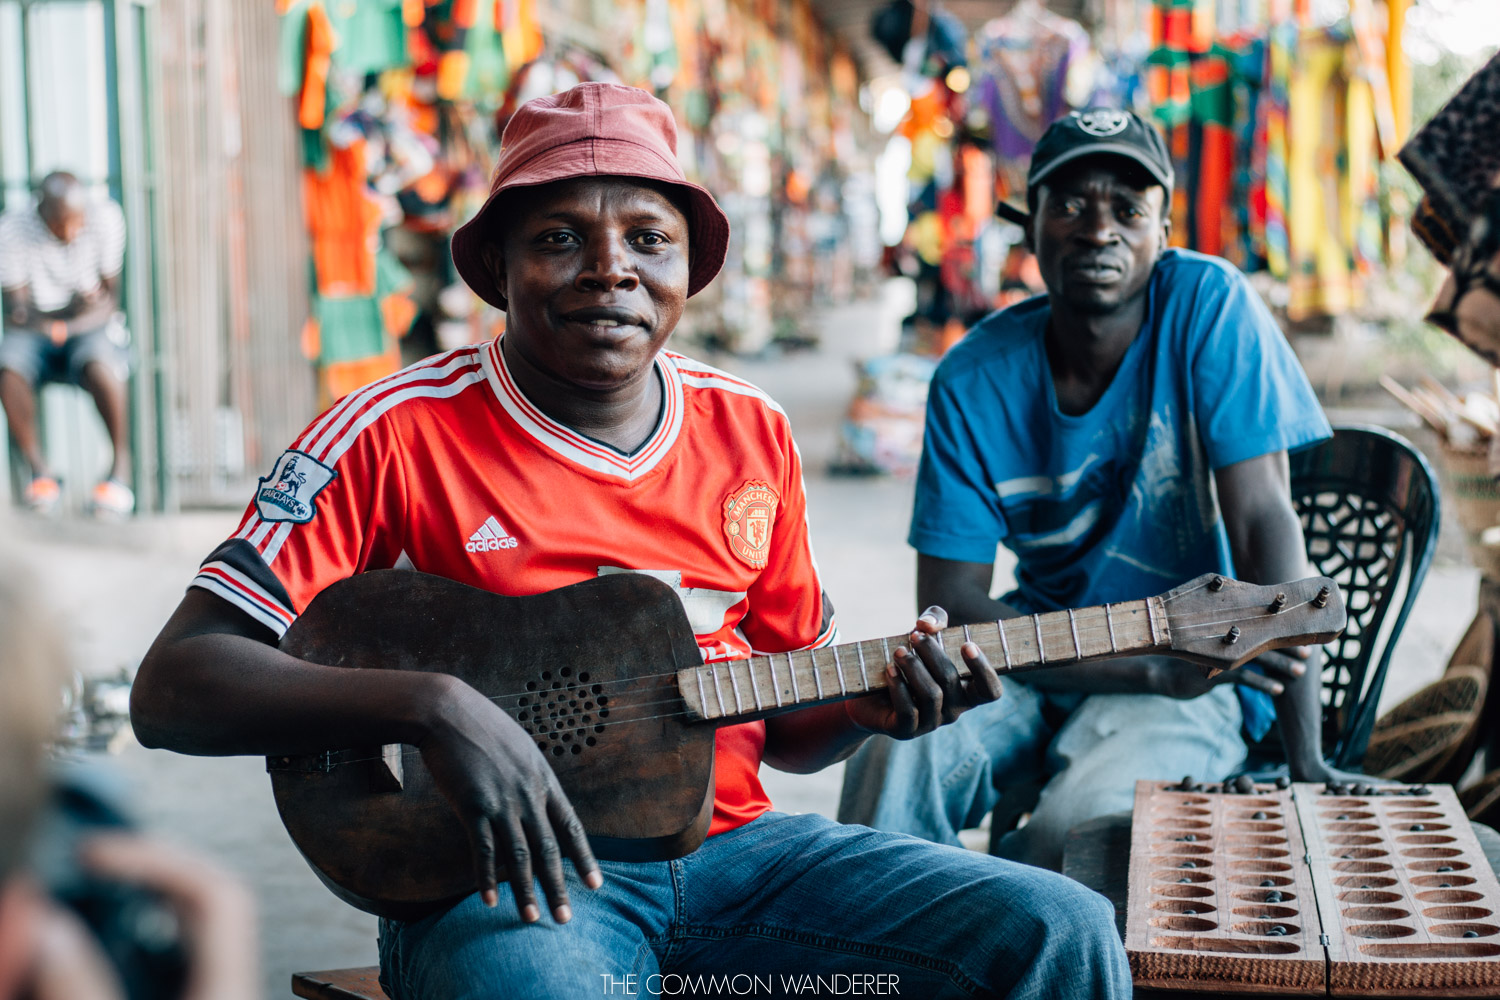 The Common Wanderer - Man plays guitar in Livingstone markets, Zambia